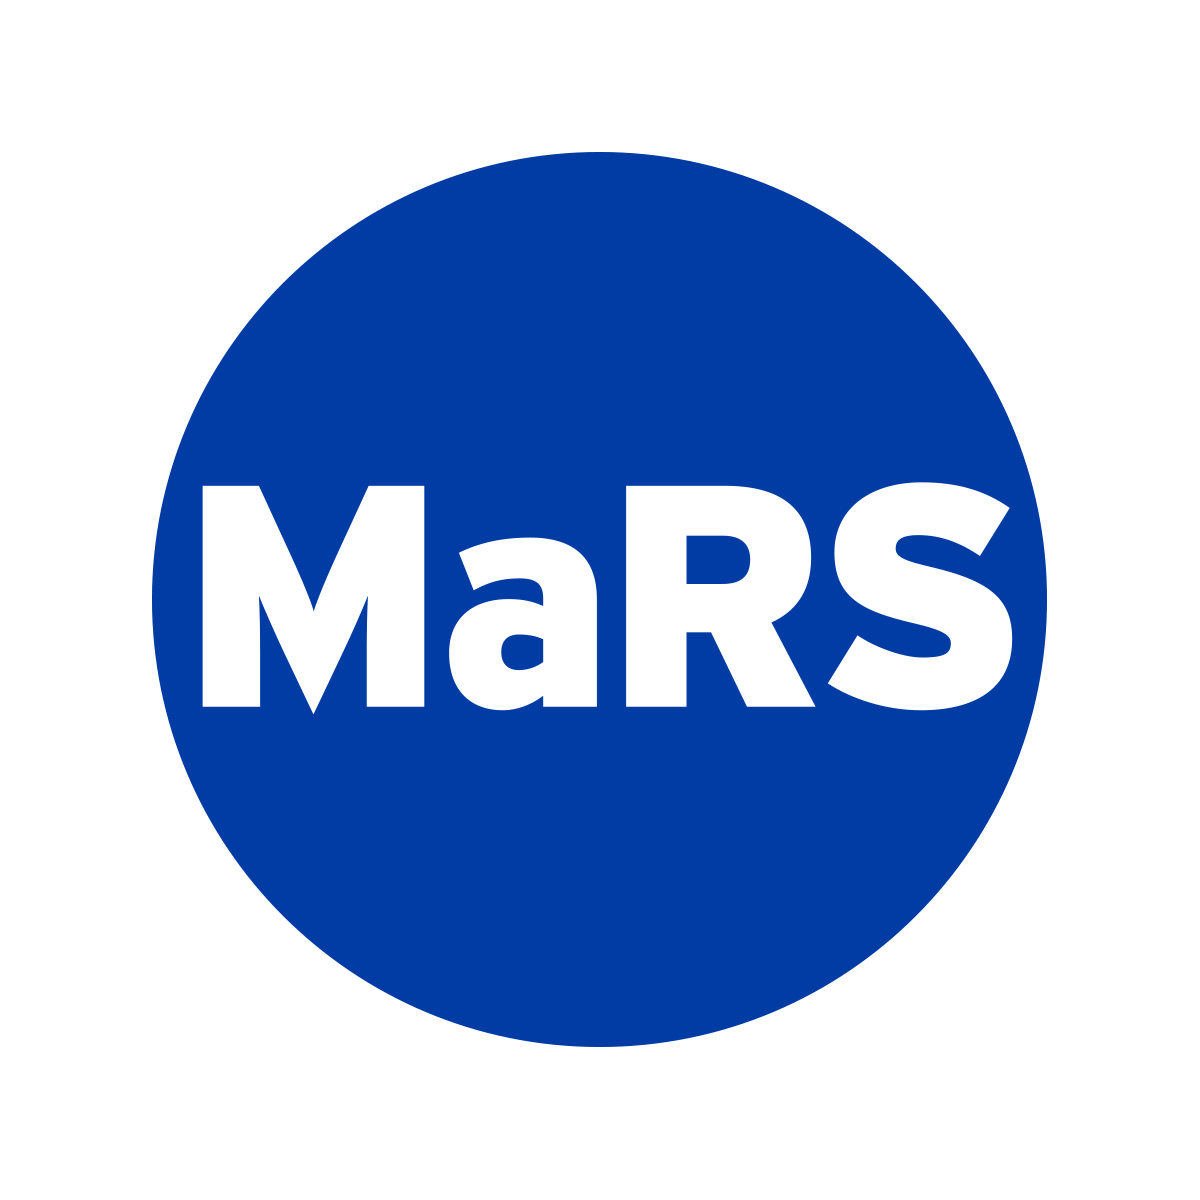 MaRS Energy & Environment - Located in the heart of Canada's largest and the world's most diverse city, MaRS is uniquely placed to lead change. We bring together educators, researchers, social scientists, entrepreneurs and business experts under one roof. Founded by civic leaders, we have a mission that is equal parts public and private — an entrepreneurial venture designed to bridge the gap between what people need and what governments can provide.